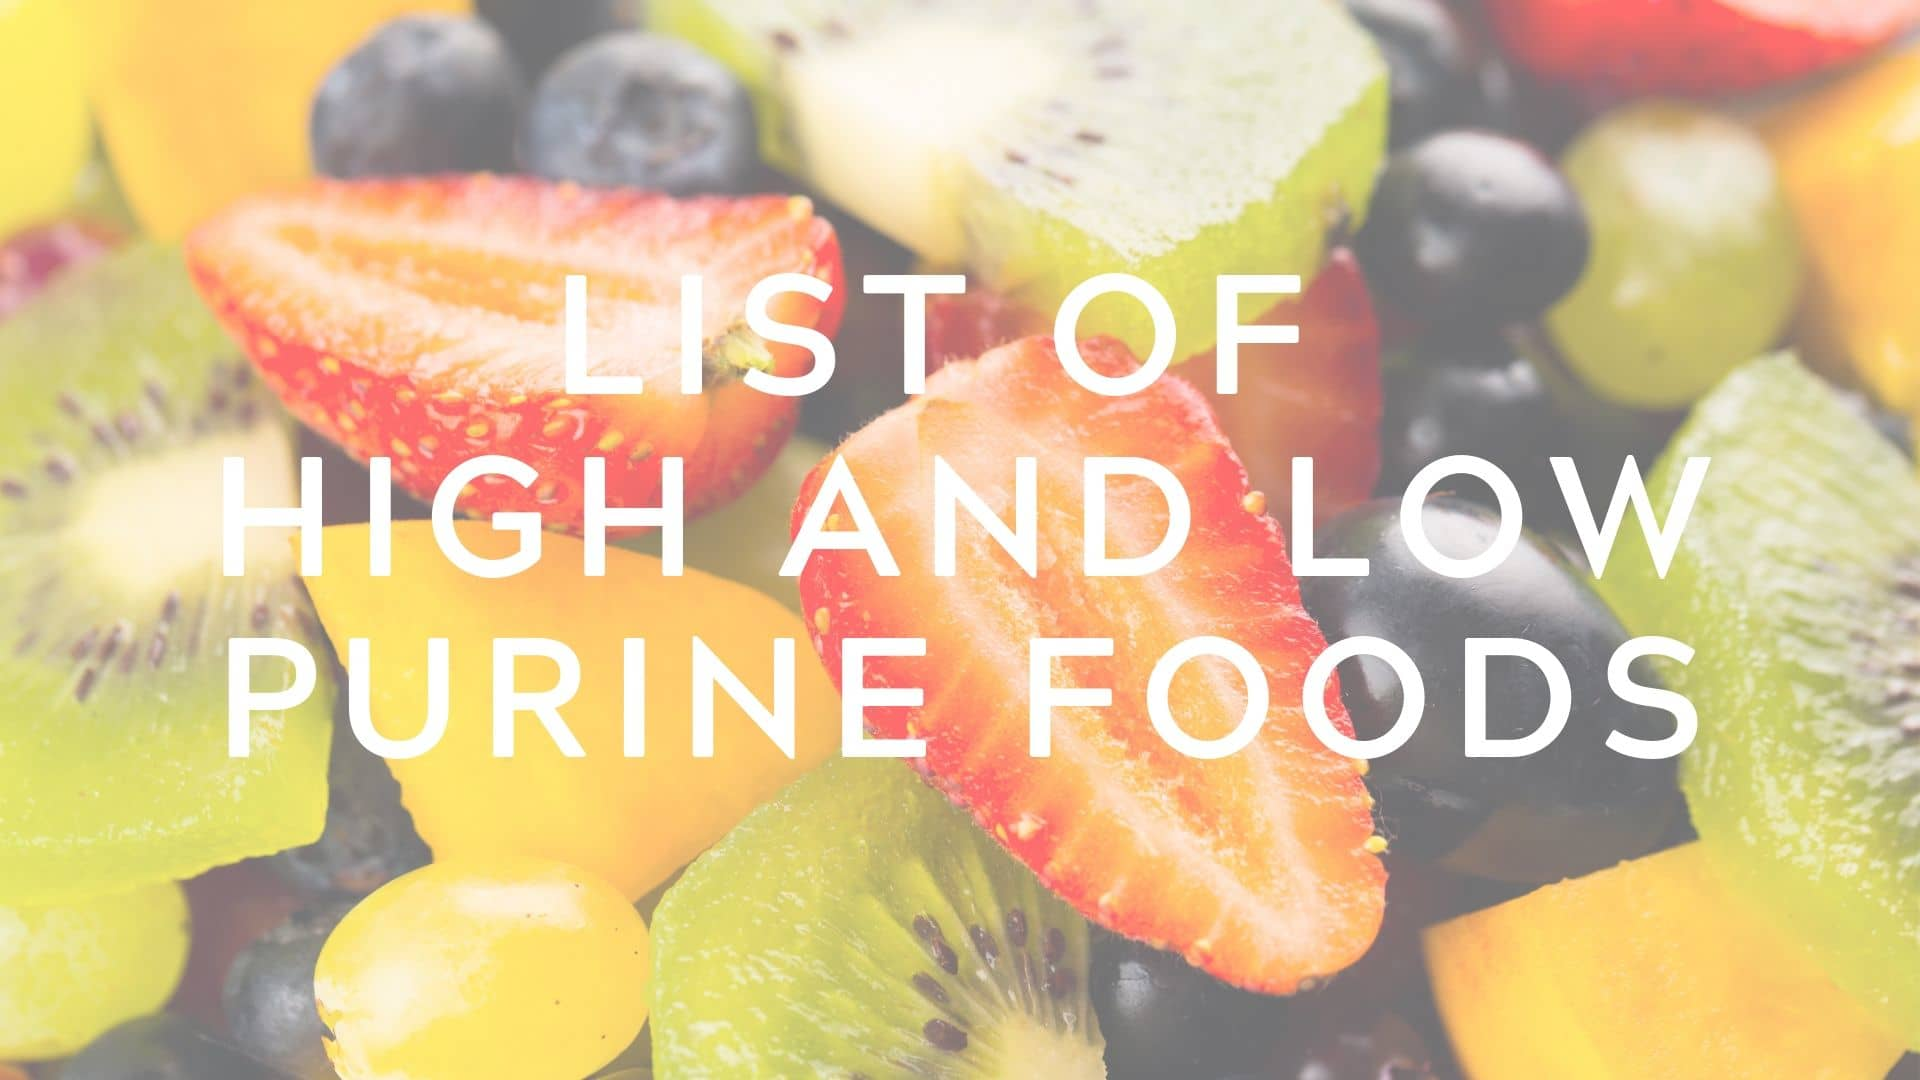 List of High and Low Purine Foods